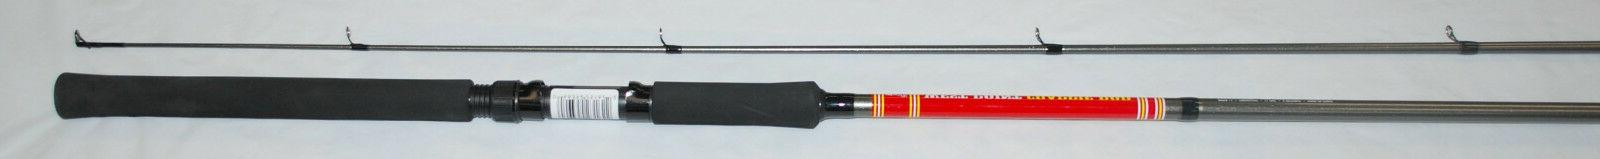 BnM WEST POINT CRAPPIE FISHING POLE,  ROD 11' WPCR11 TROLLIN